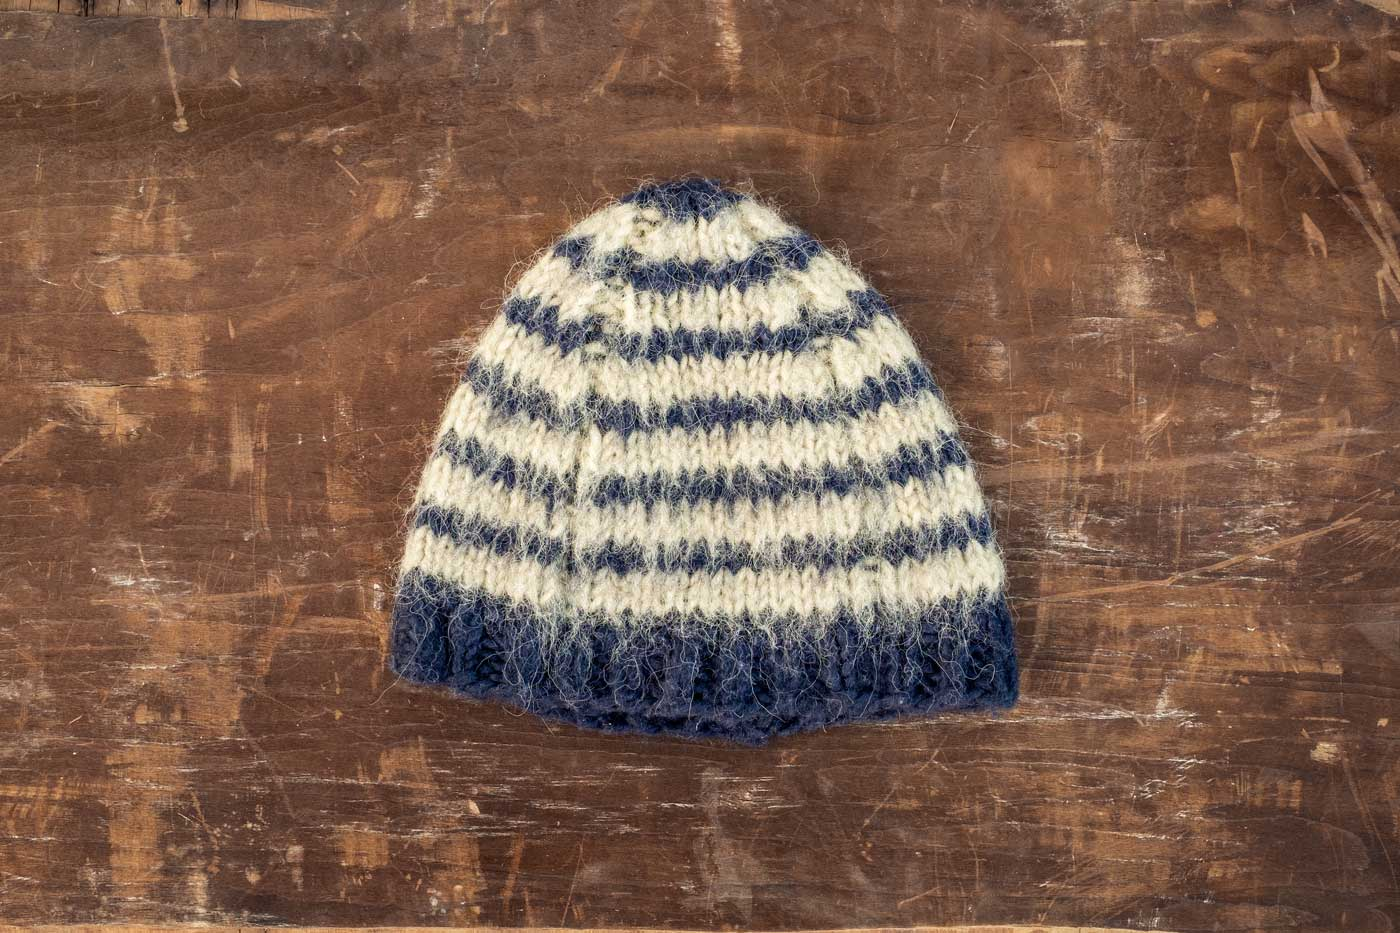 Blue and white brushed wool hat laying flat on dark wood.